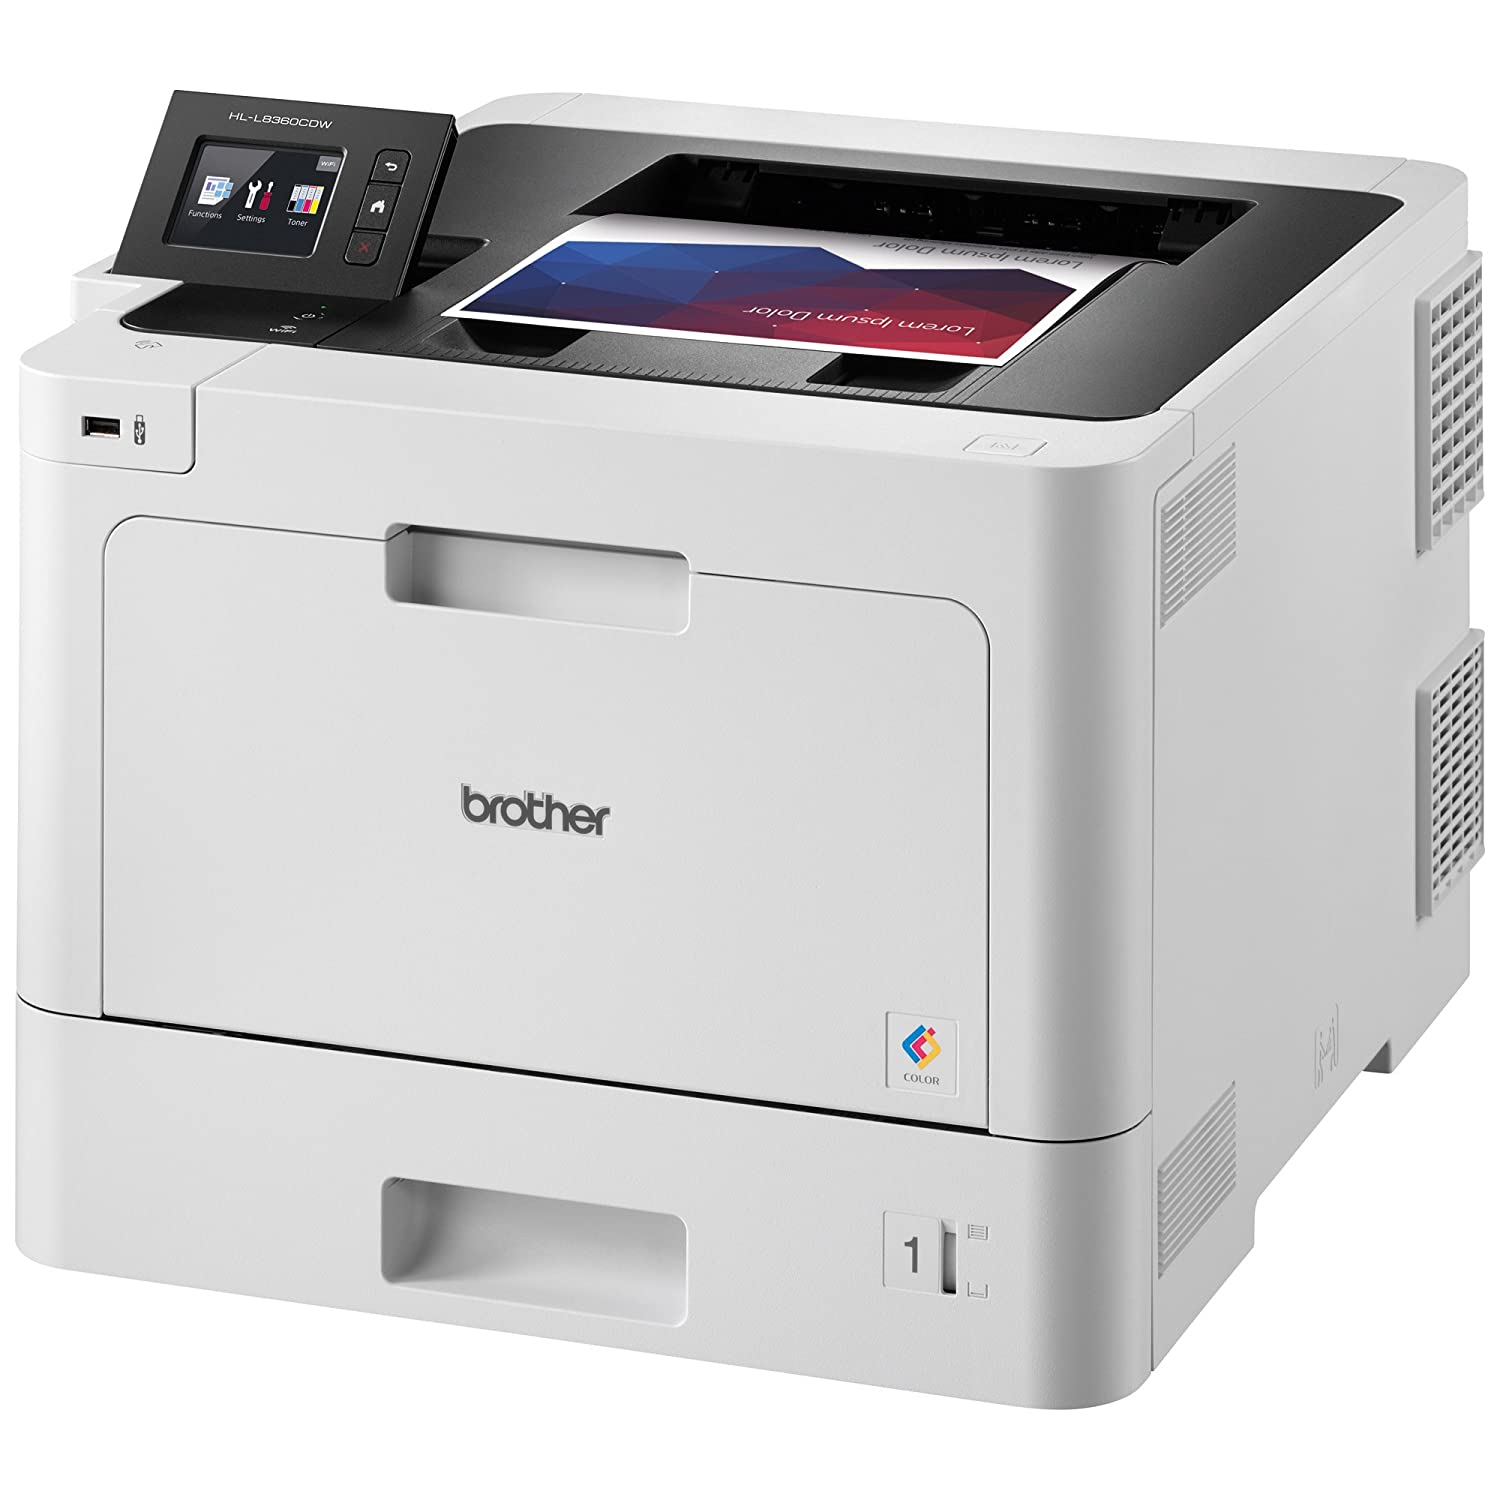 Brother Business Wireless Printer HL-L8360CDW Black Friday Deal 2020